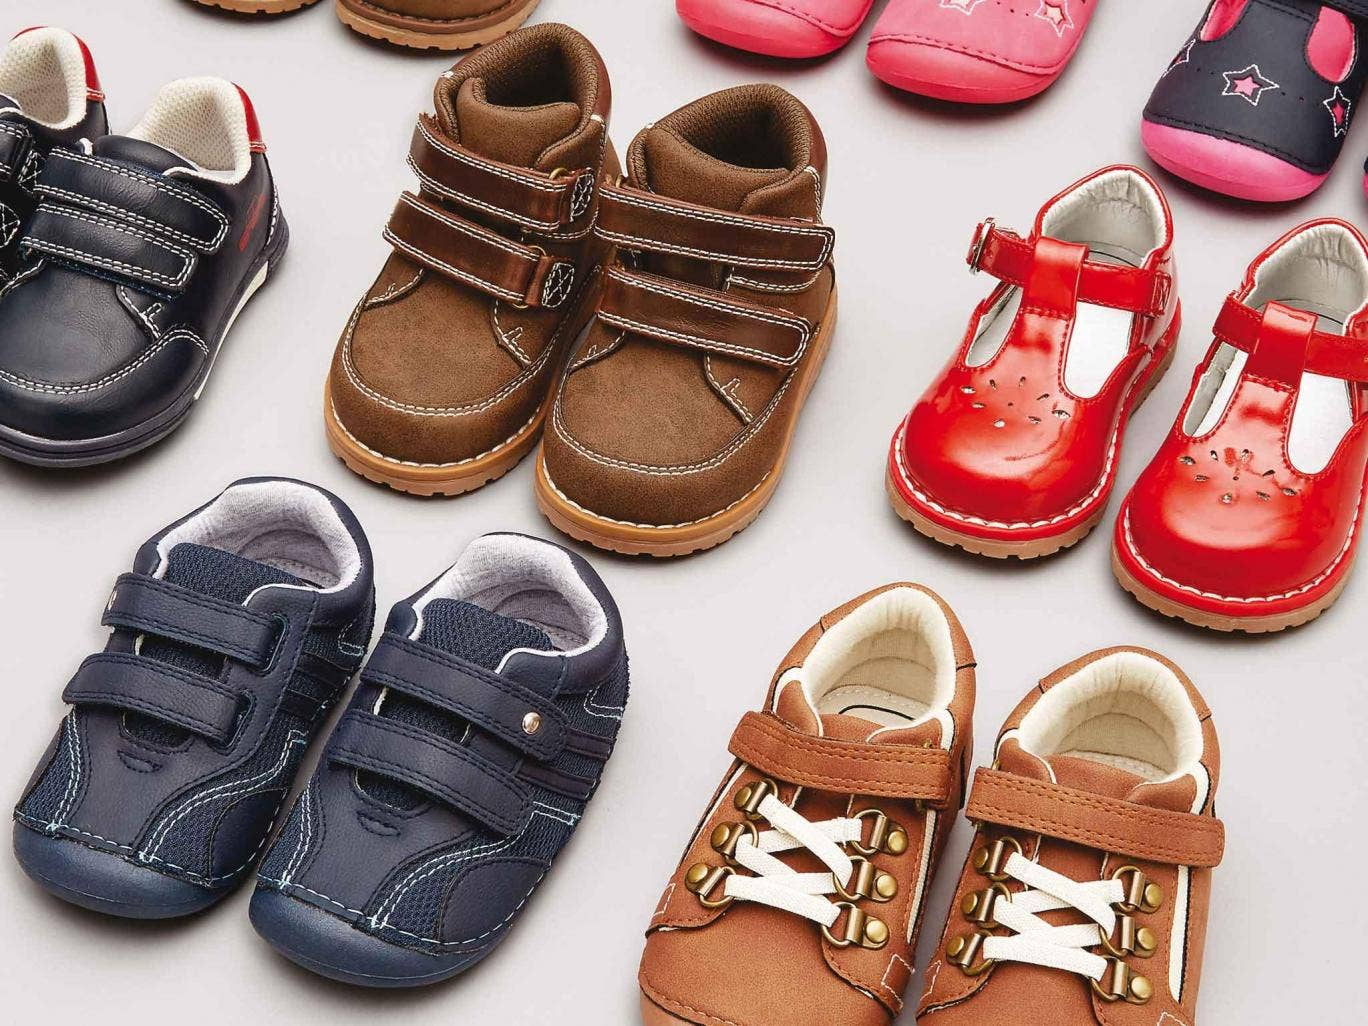 Childrens shoes Geox - quality and beauty